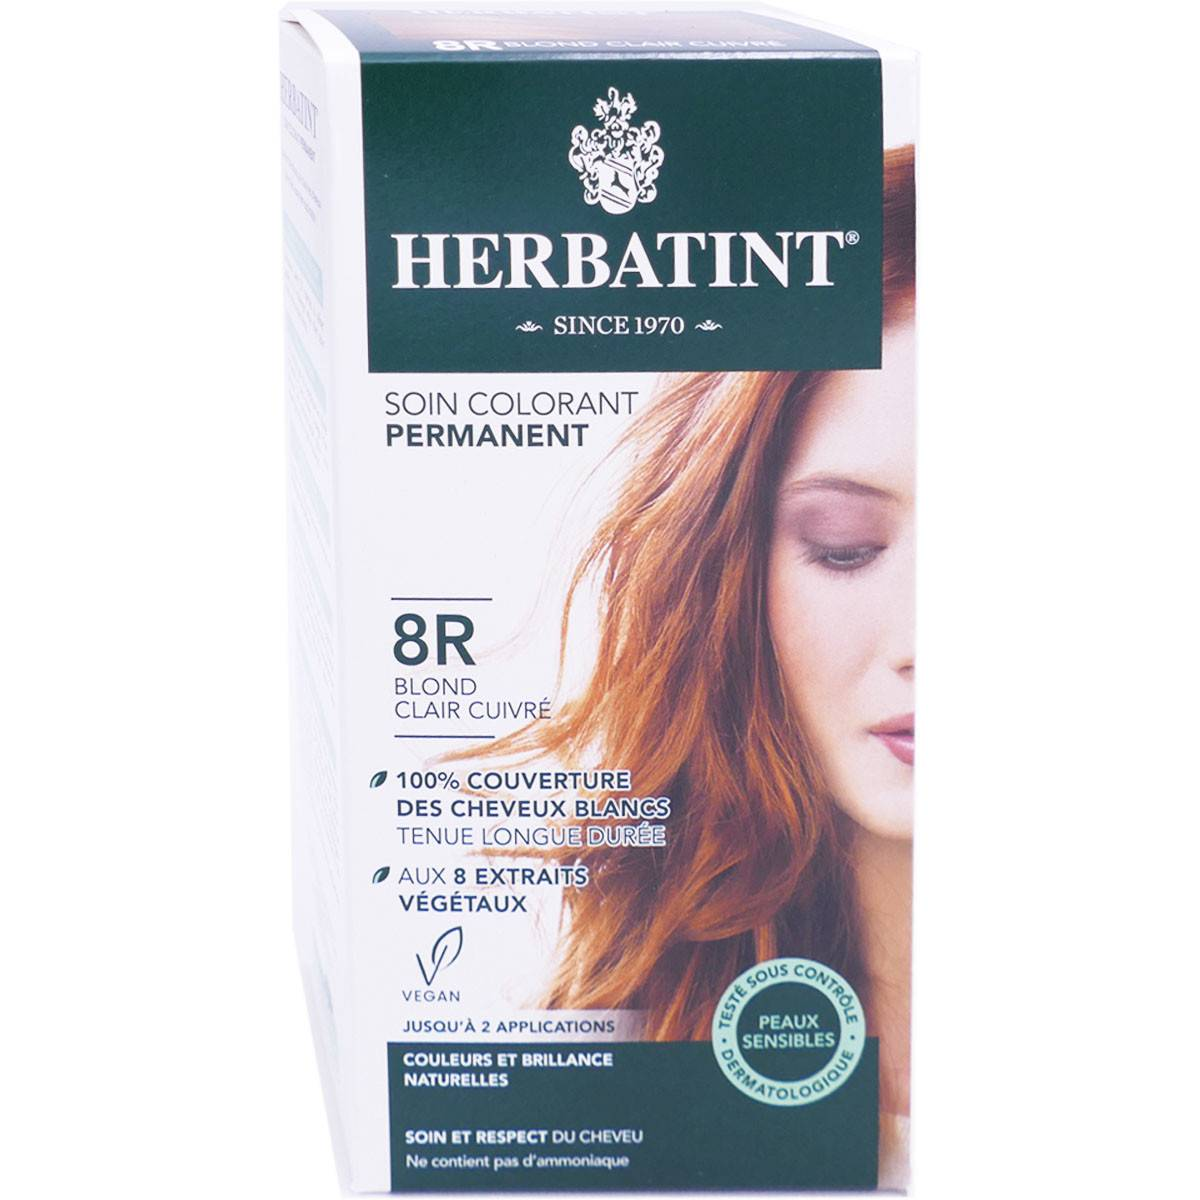 Herbatint soin colorant 8r blond clair cuivre 150ml